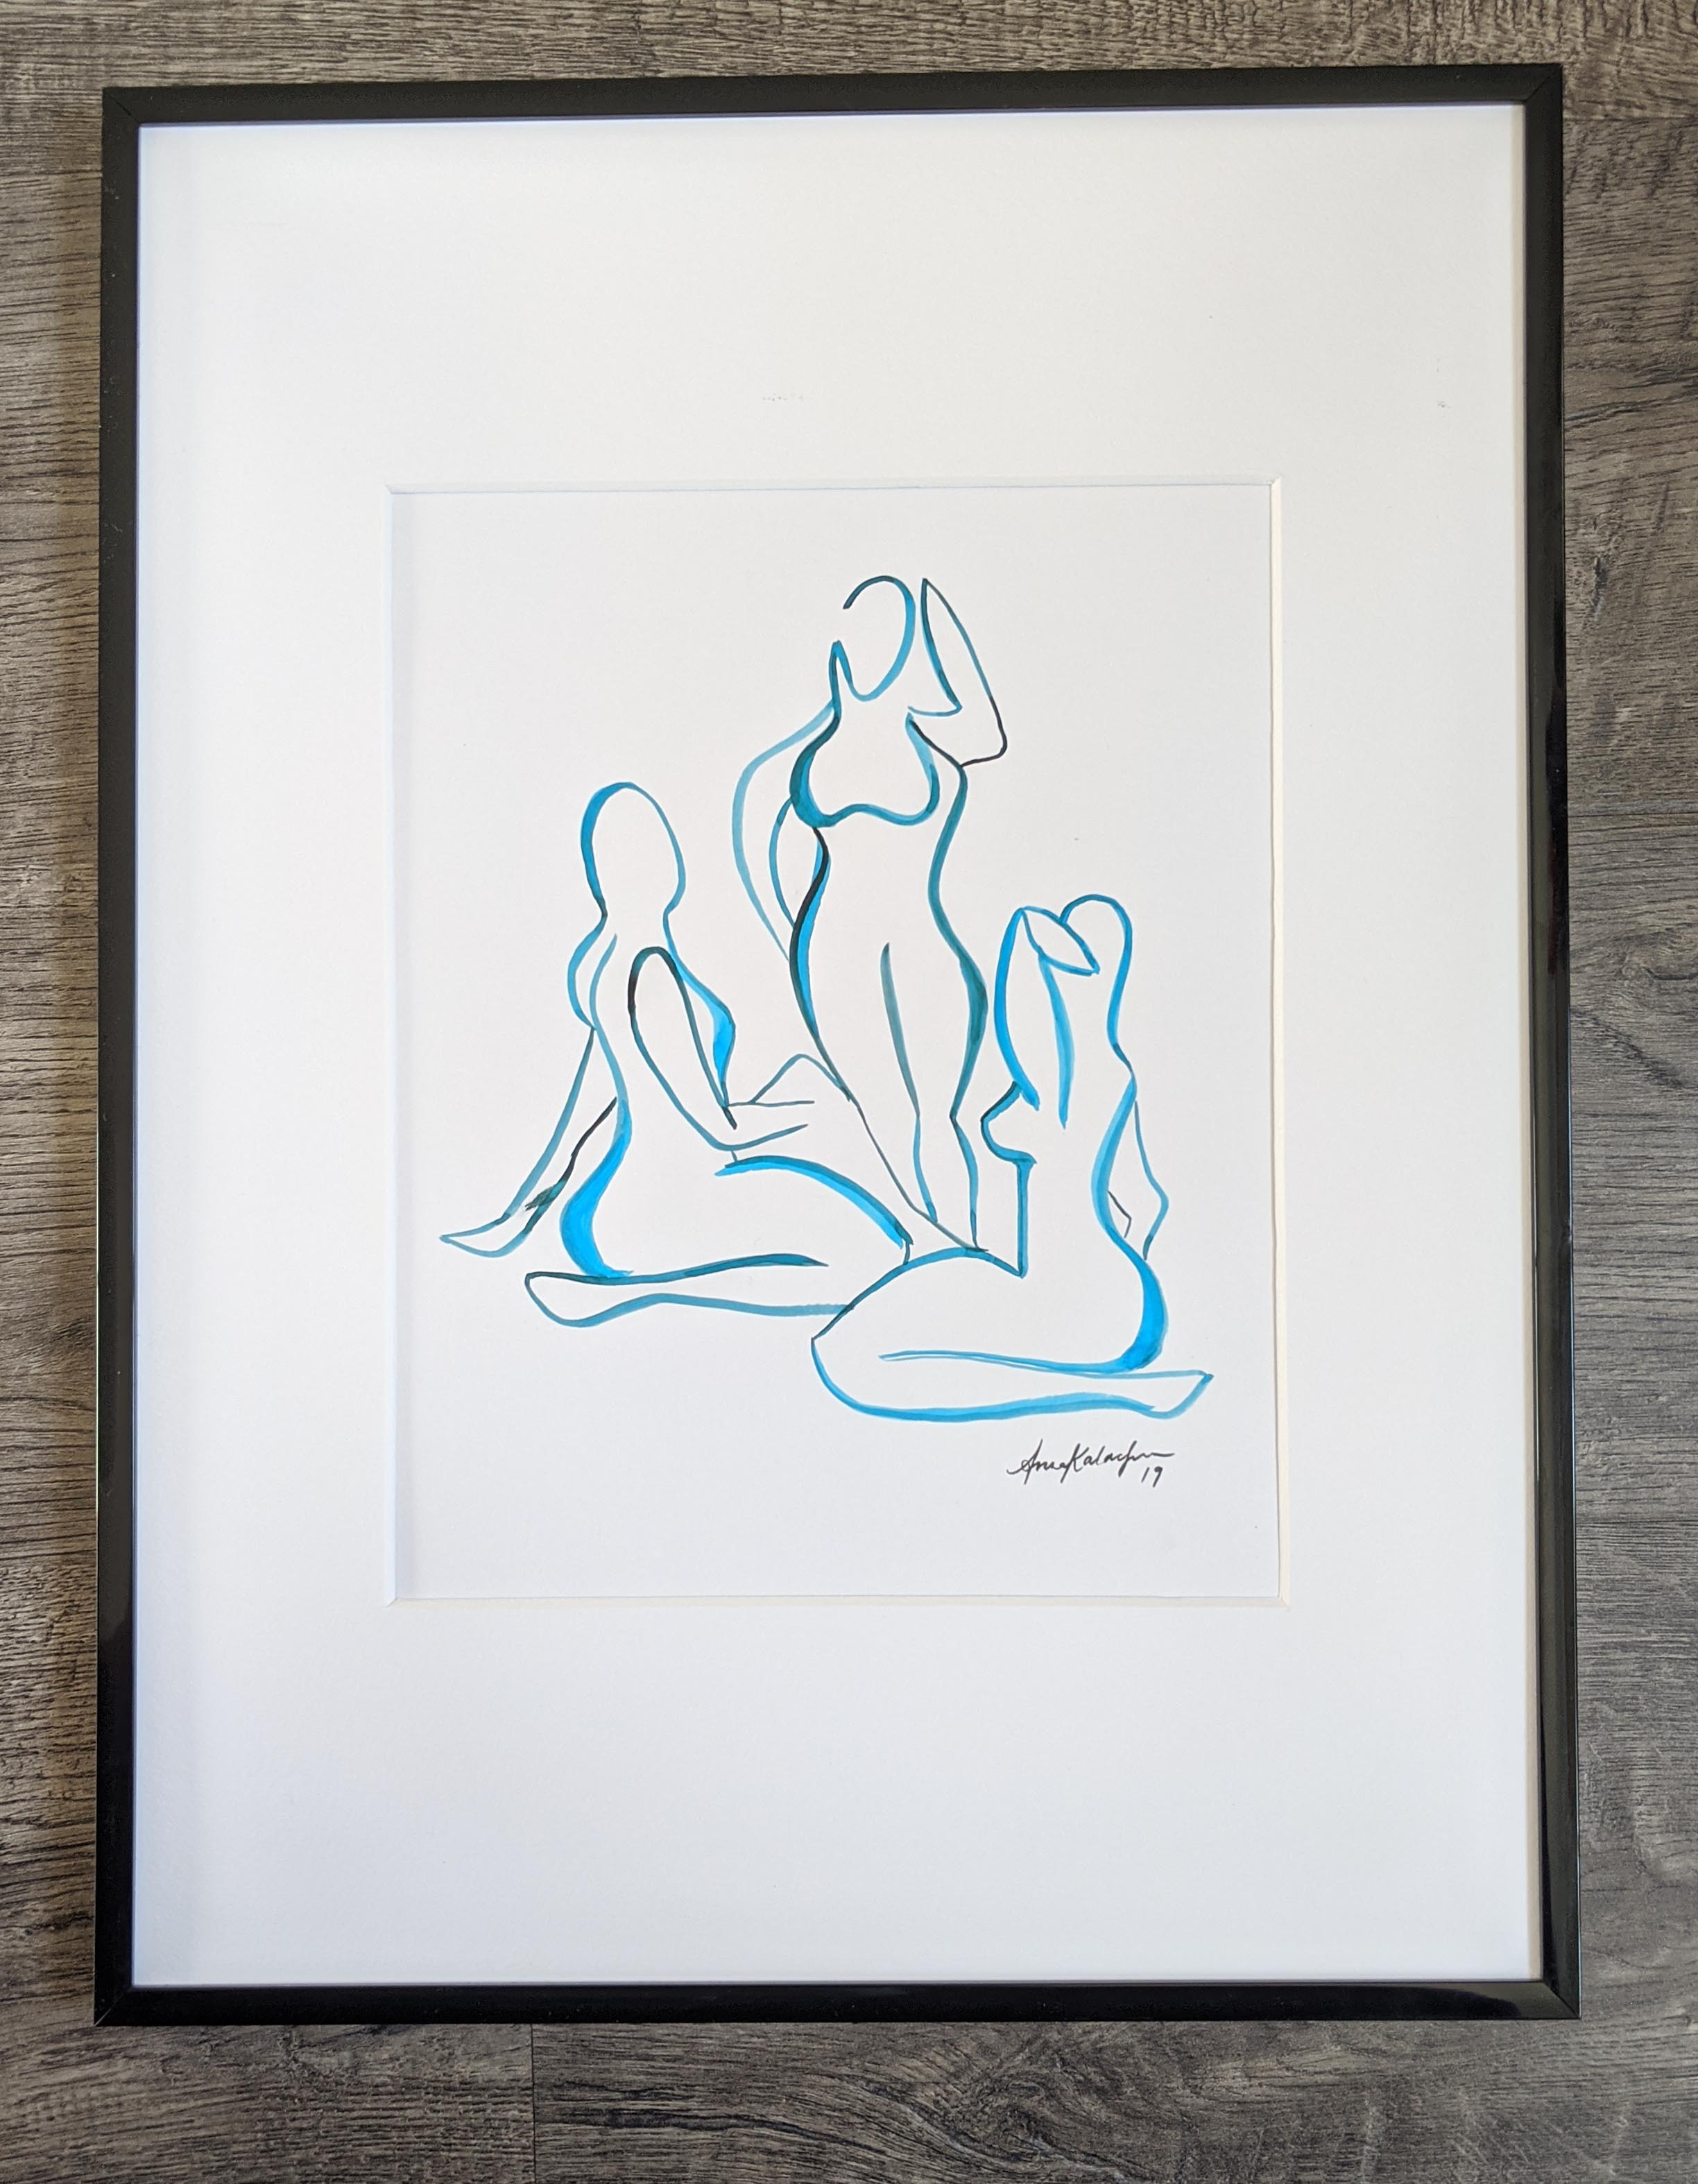 Three Women Study - Blue Outline, 12x9 in